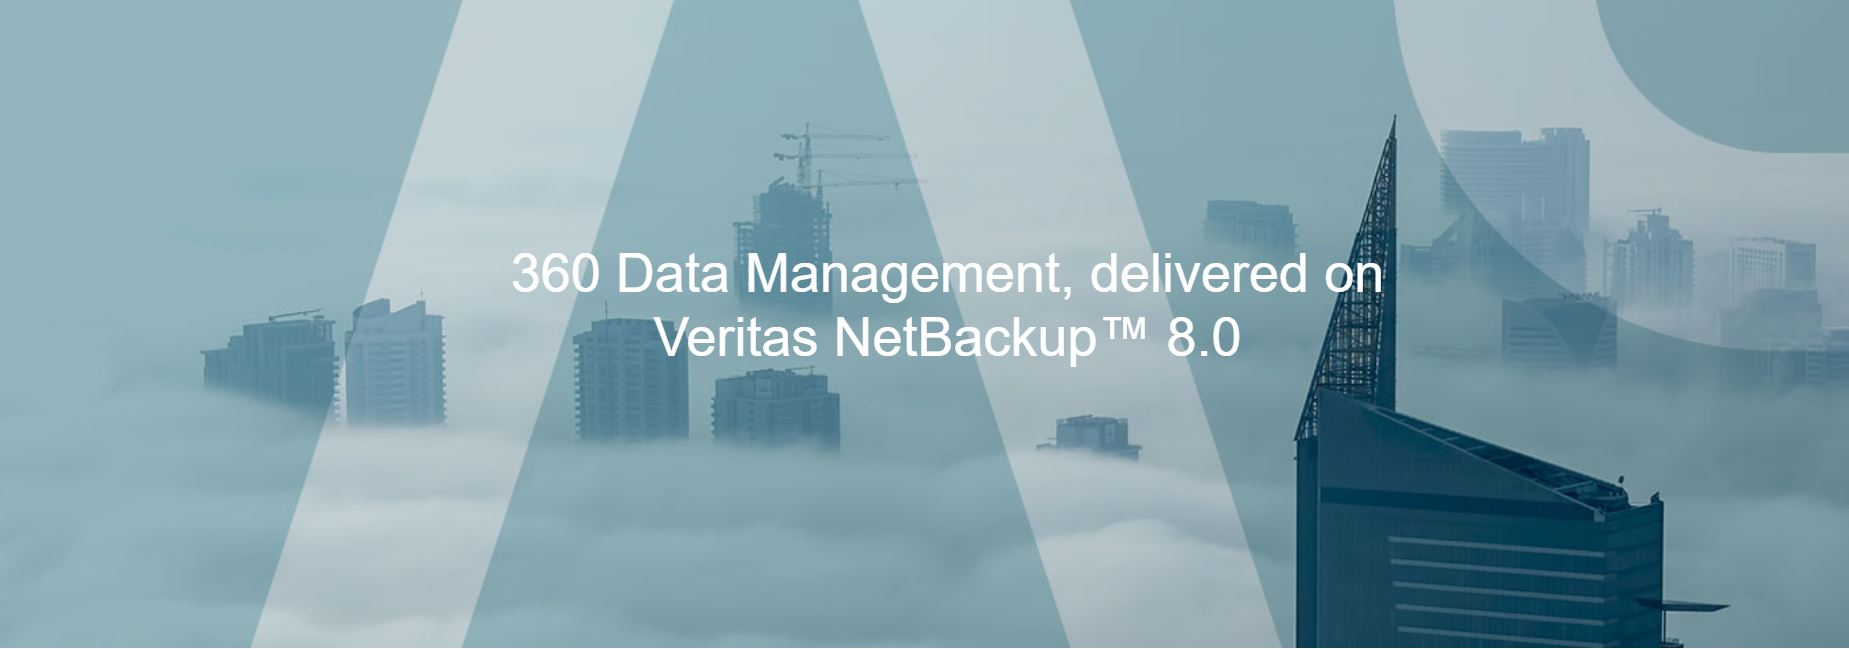 360 Data Management, delivered on Veritas NetBackup™ 8.0